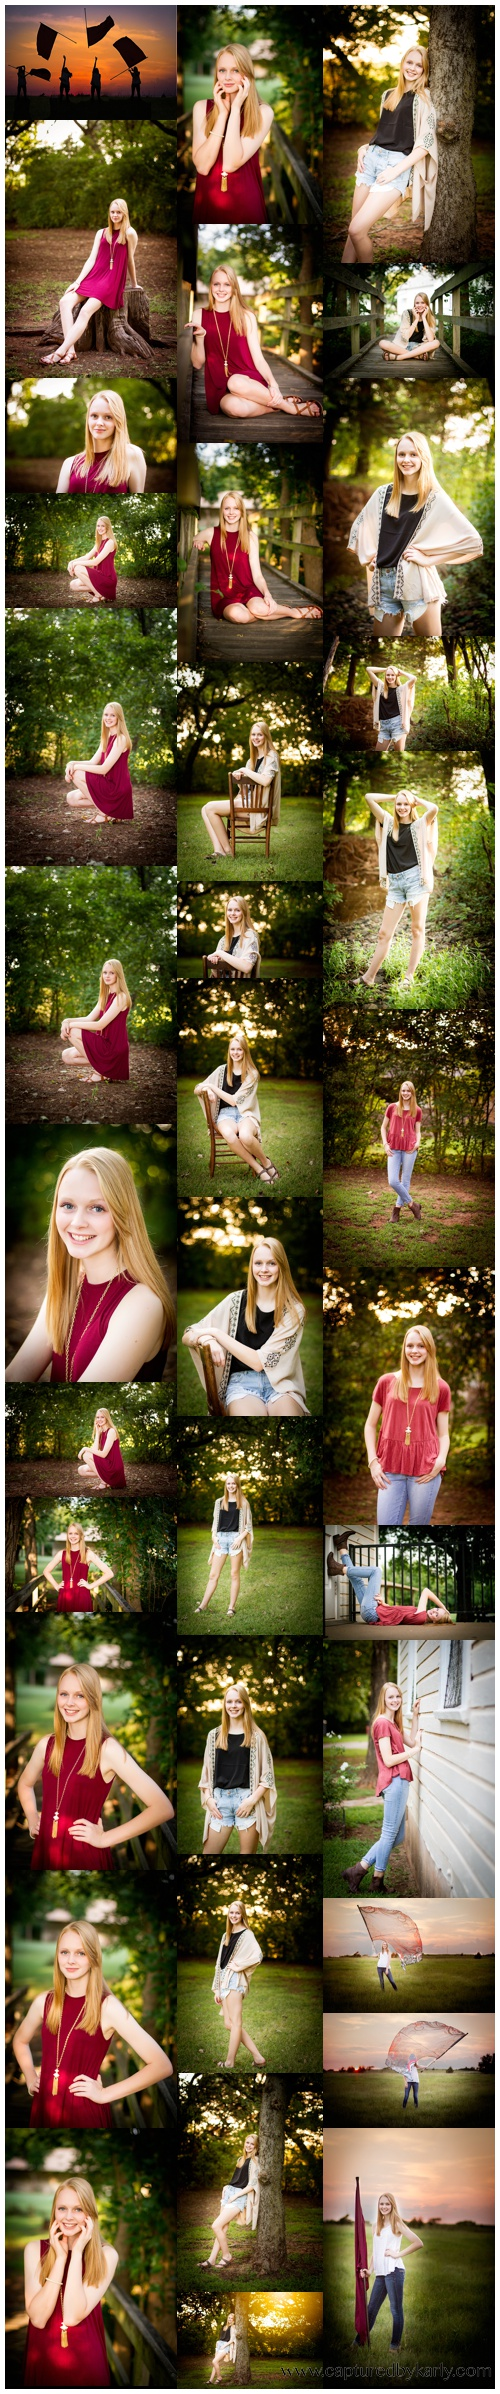 morgan perry oklahoma 73077 senior photographer captured by karly